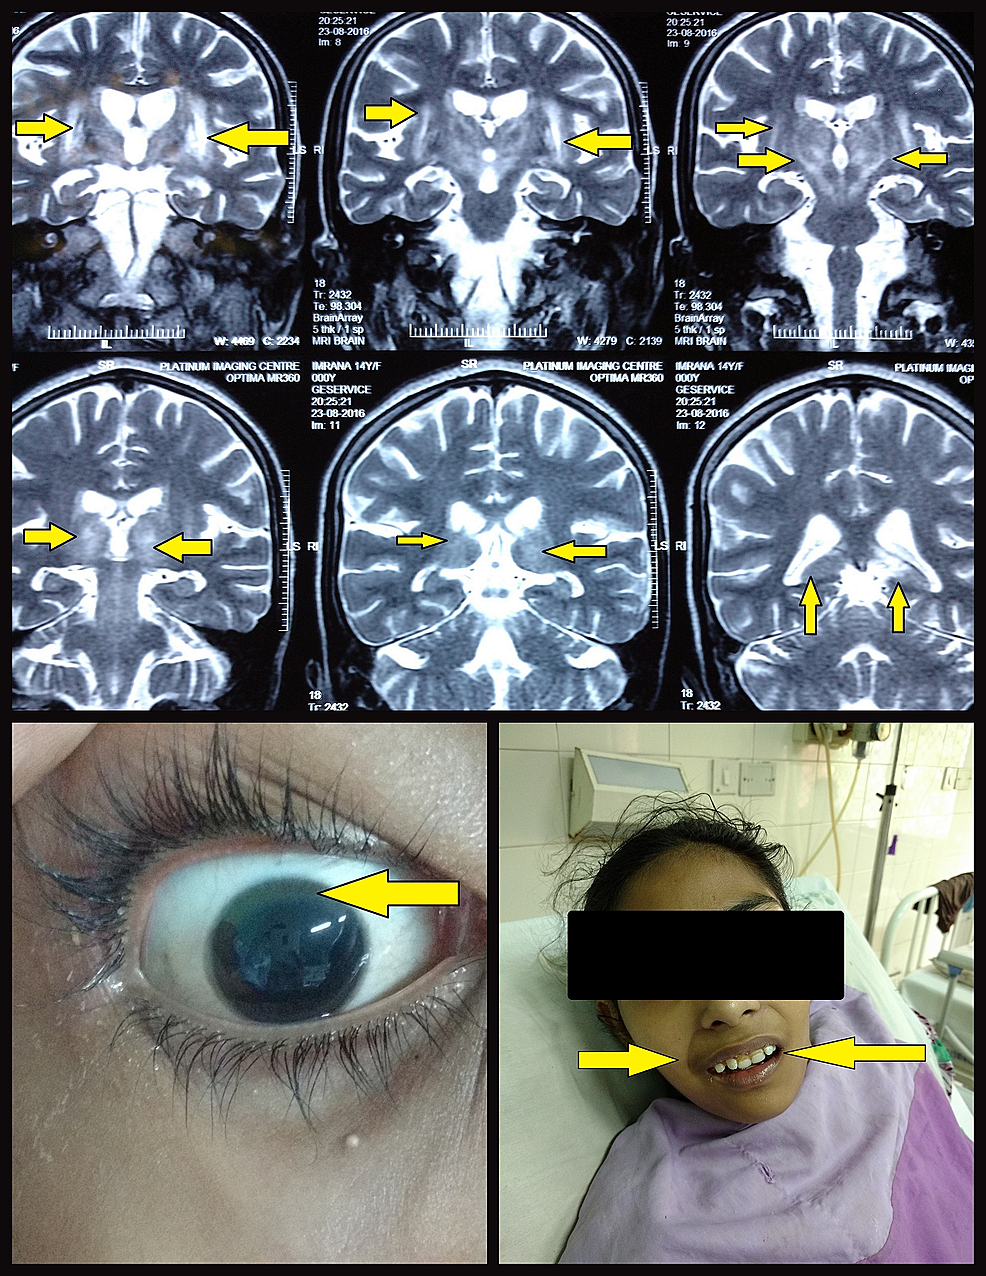 Figure-Showing-Hyperintensity-of-Basal-Ganglia-and-Surrounding-Brain-Gray-Matter-on-MRI,-Kayser-Fleischer-Rings,-and-Mask-Like-Facies